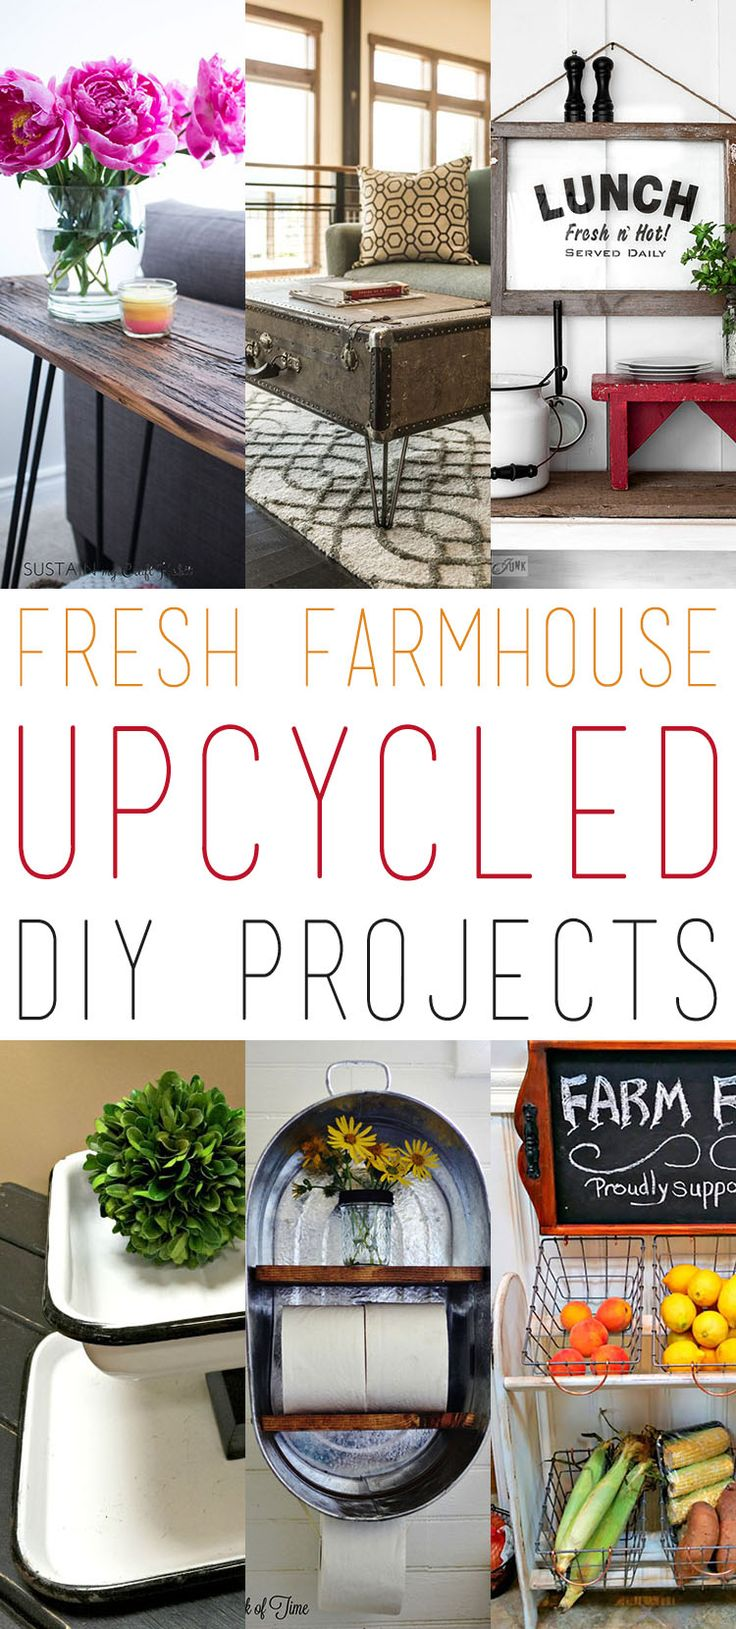 Fresh Farmhouse Upcycled DIY Projects - The Cottage Market